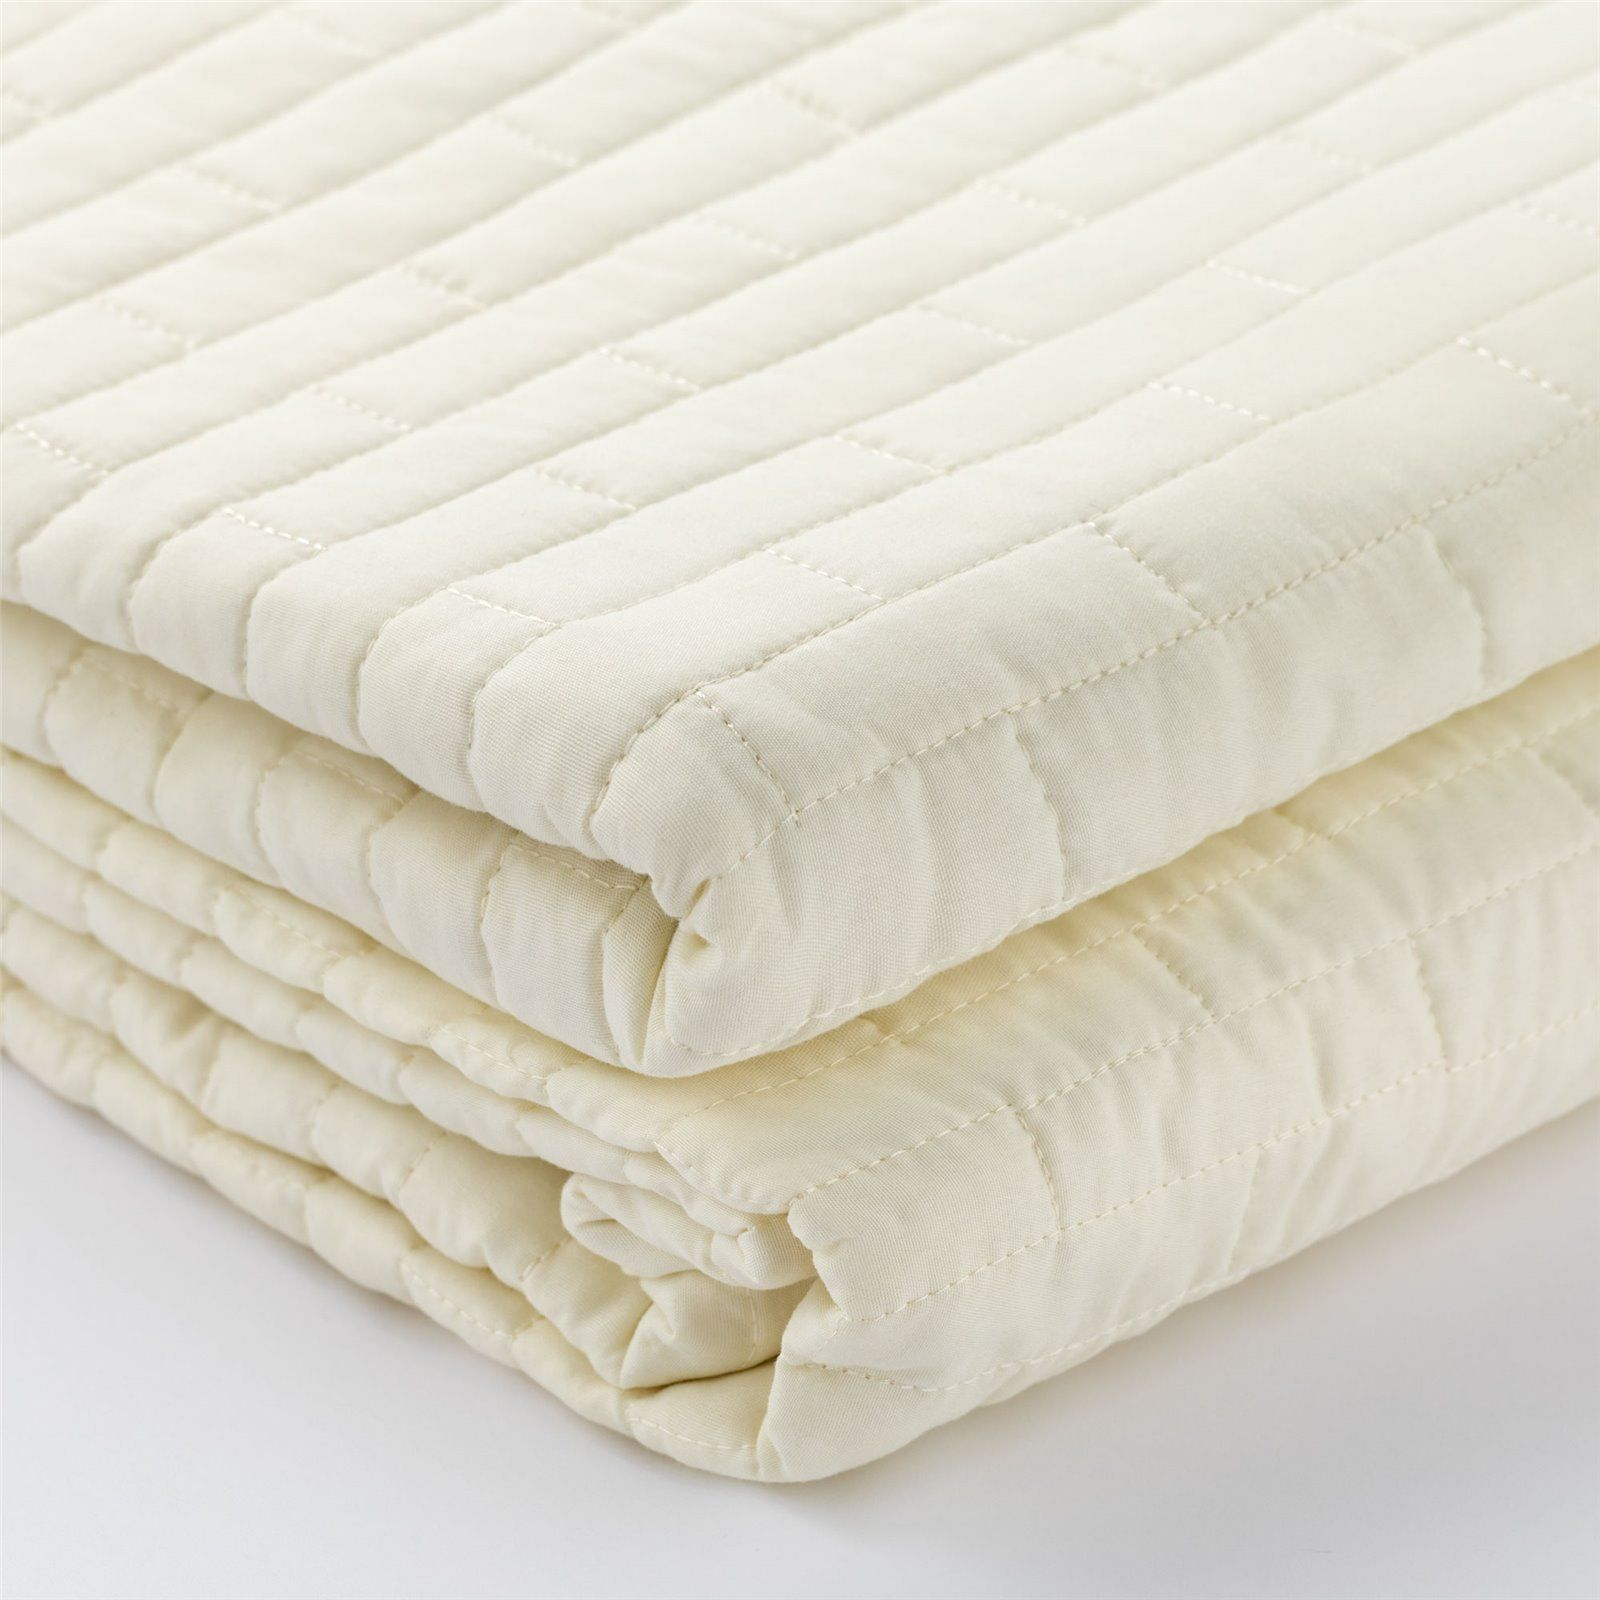 Simply Super Soft King Quilt